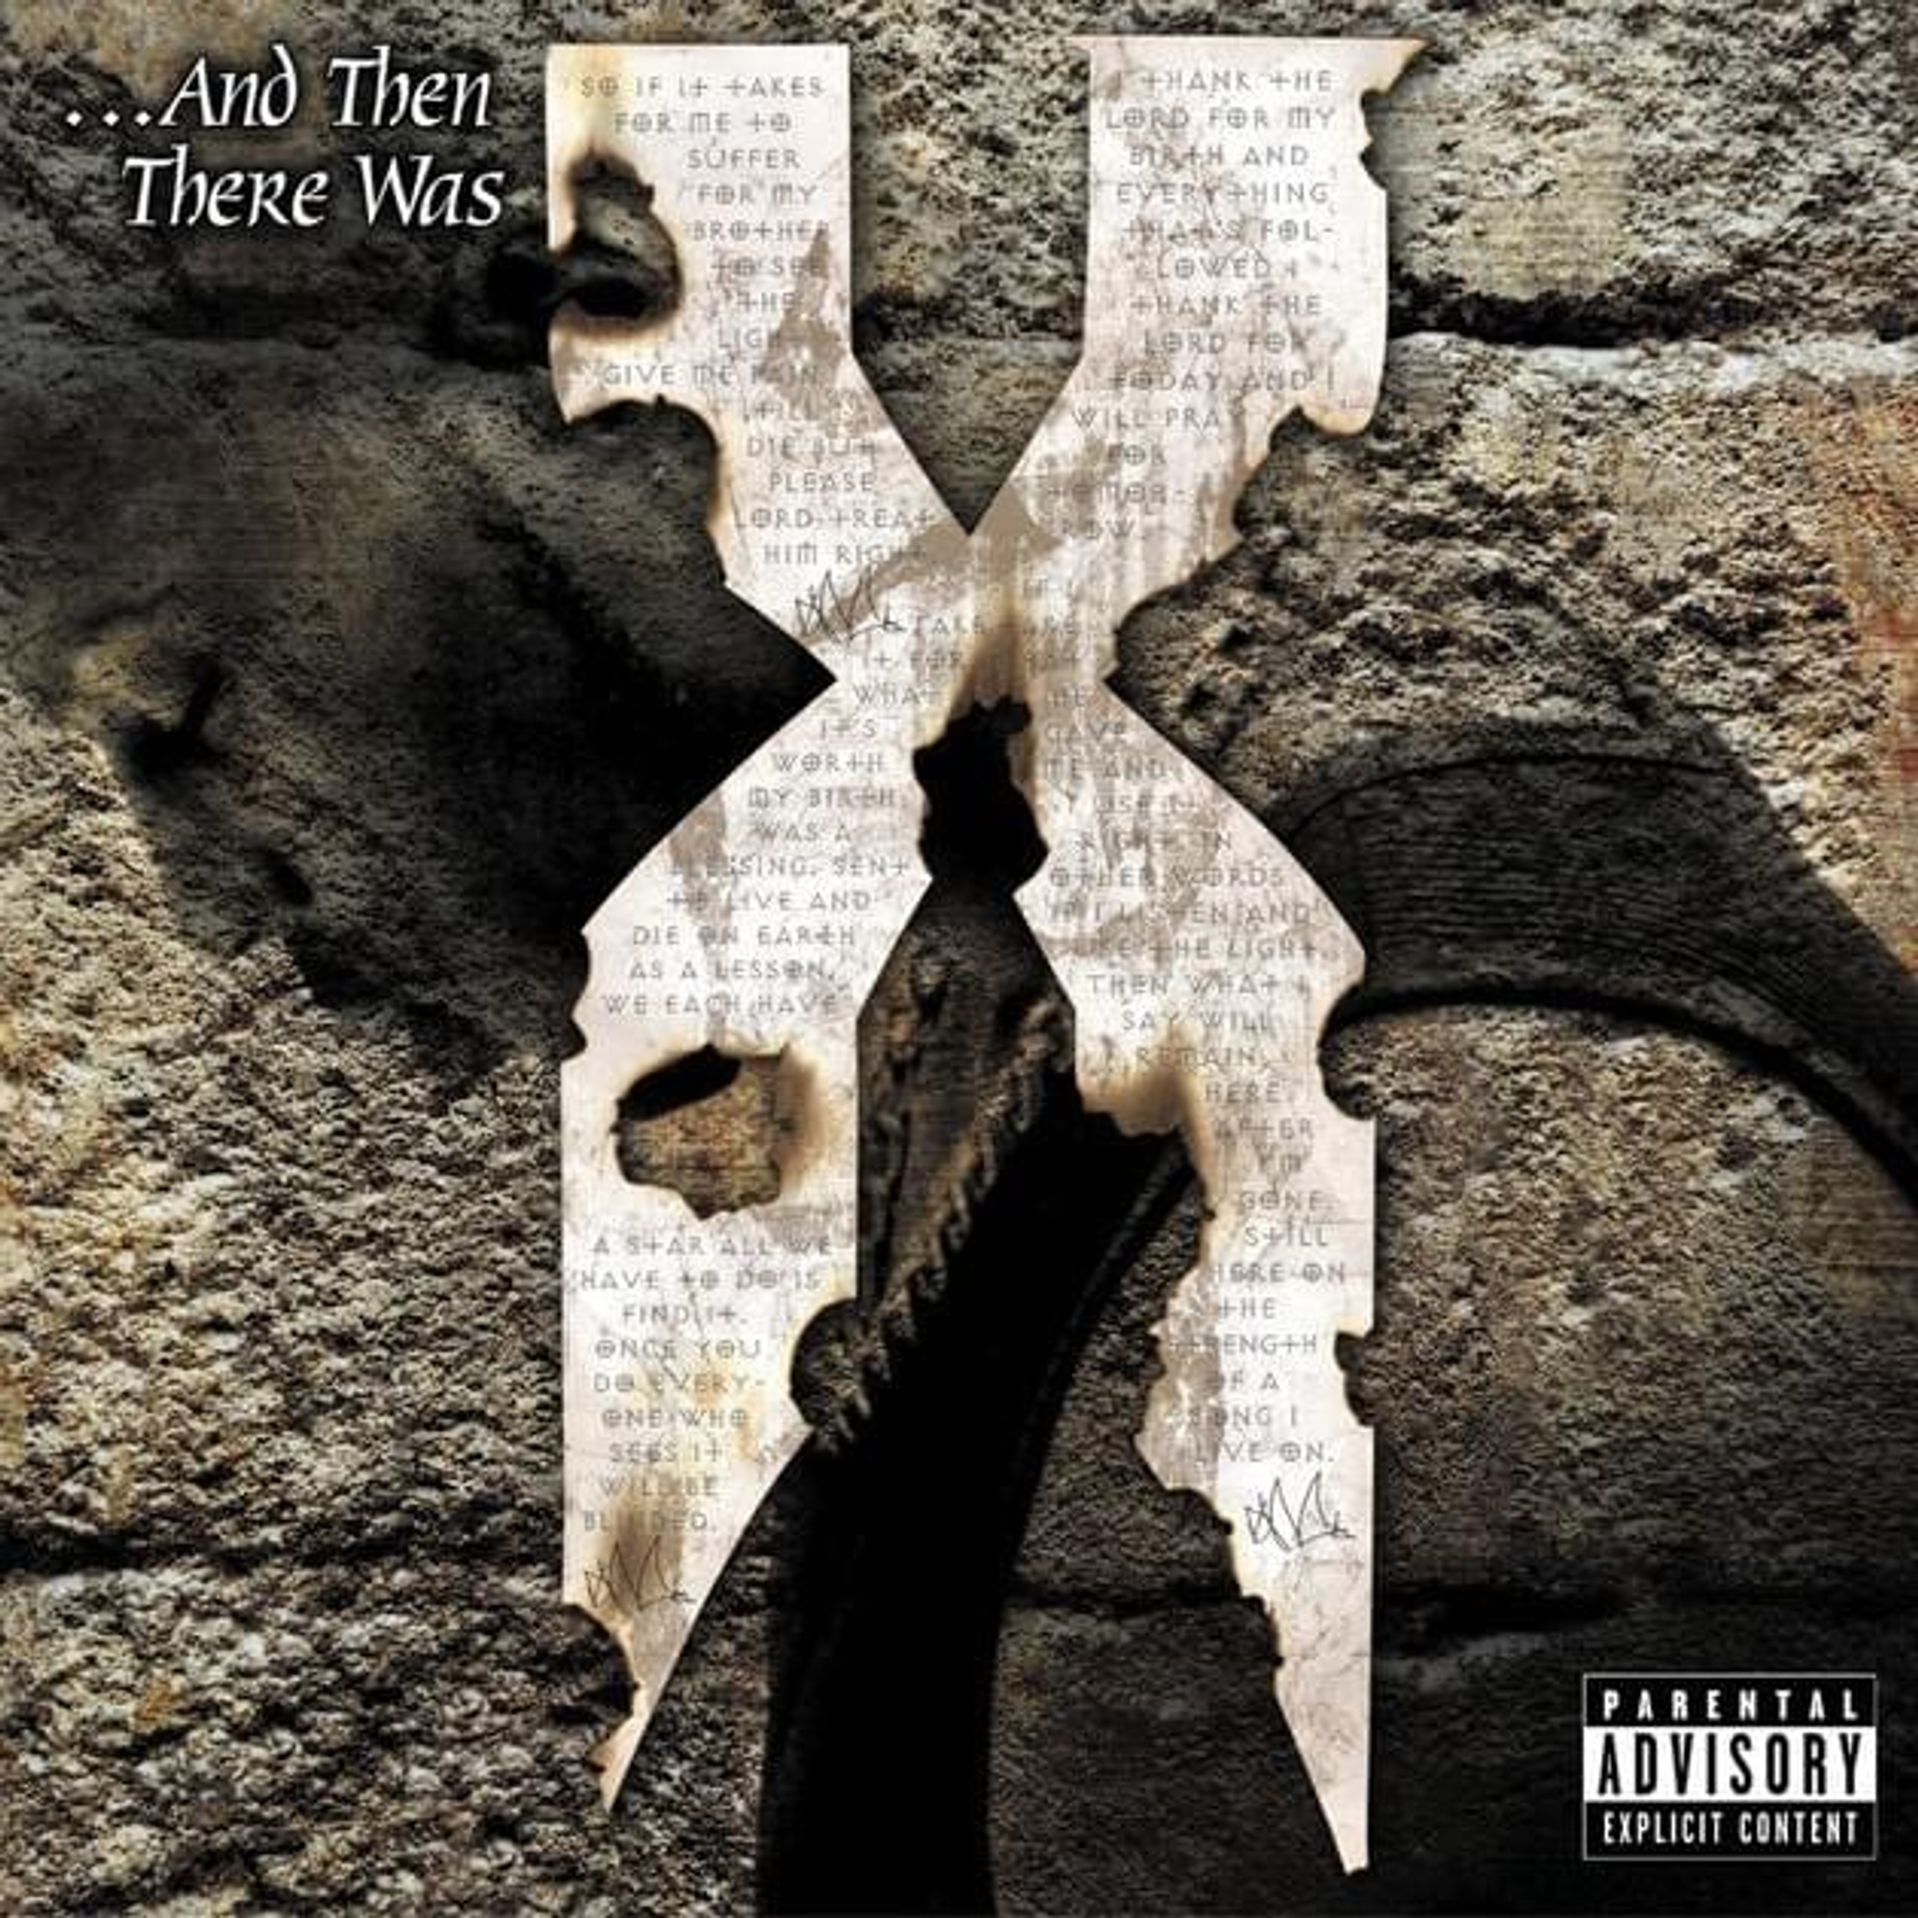 Album Title: ...And Then There Was X by: DMX